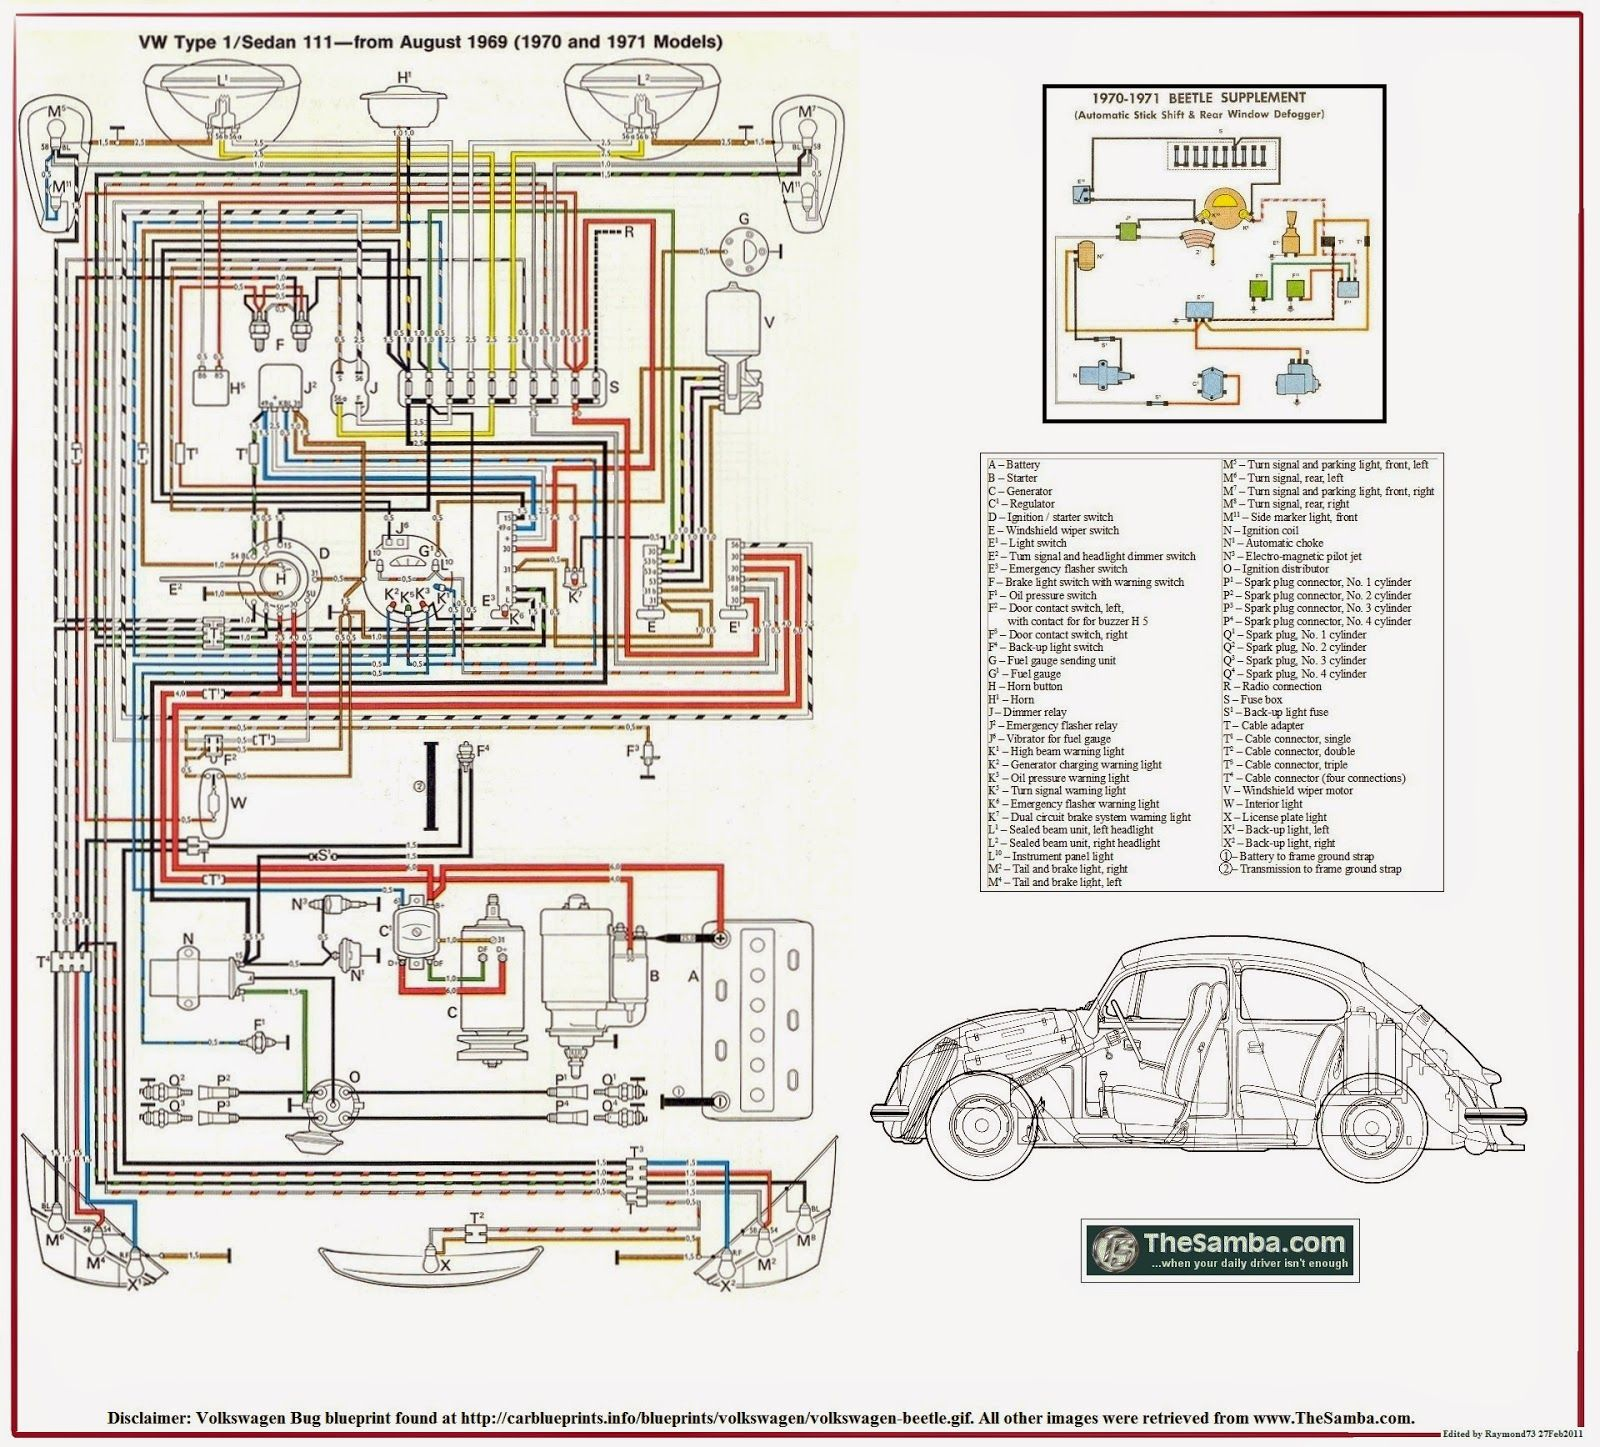 c42f7e50c6cd2df691326f8c1e5c6e97 urbi et orbi my bucket list journals volkswagen (vw) beetle 1960 vw bus wiring diagram at fashall.co